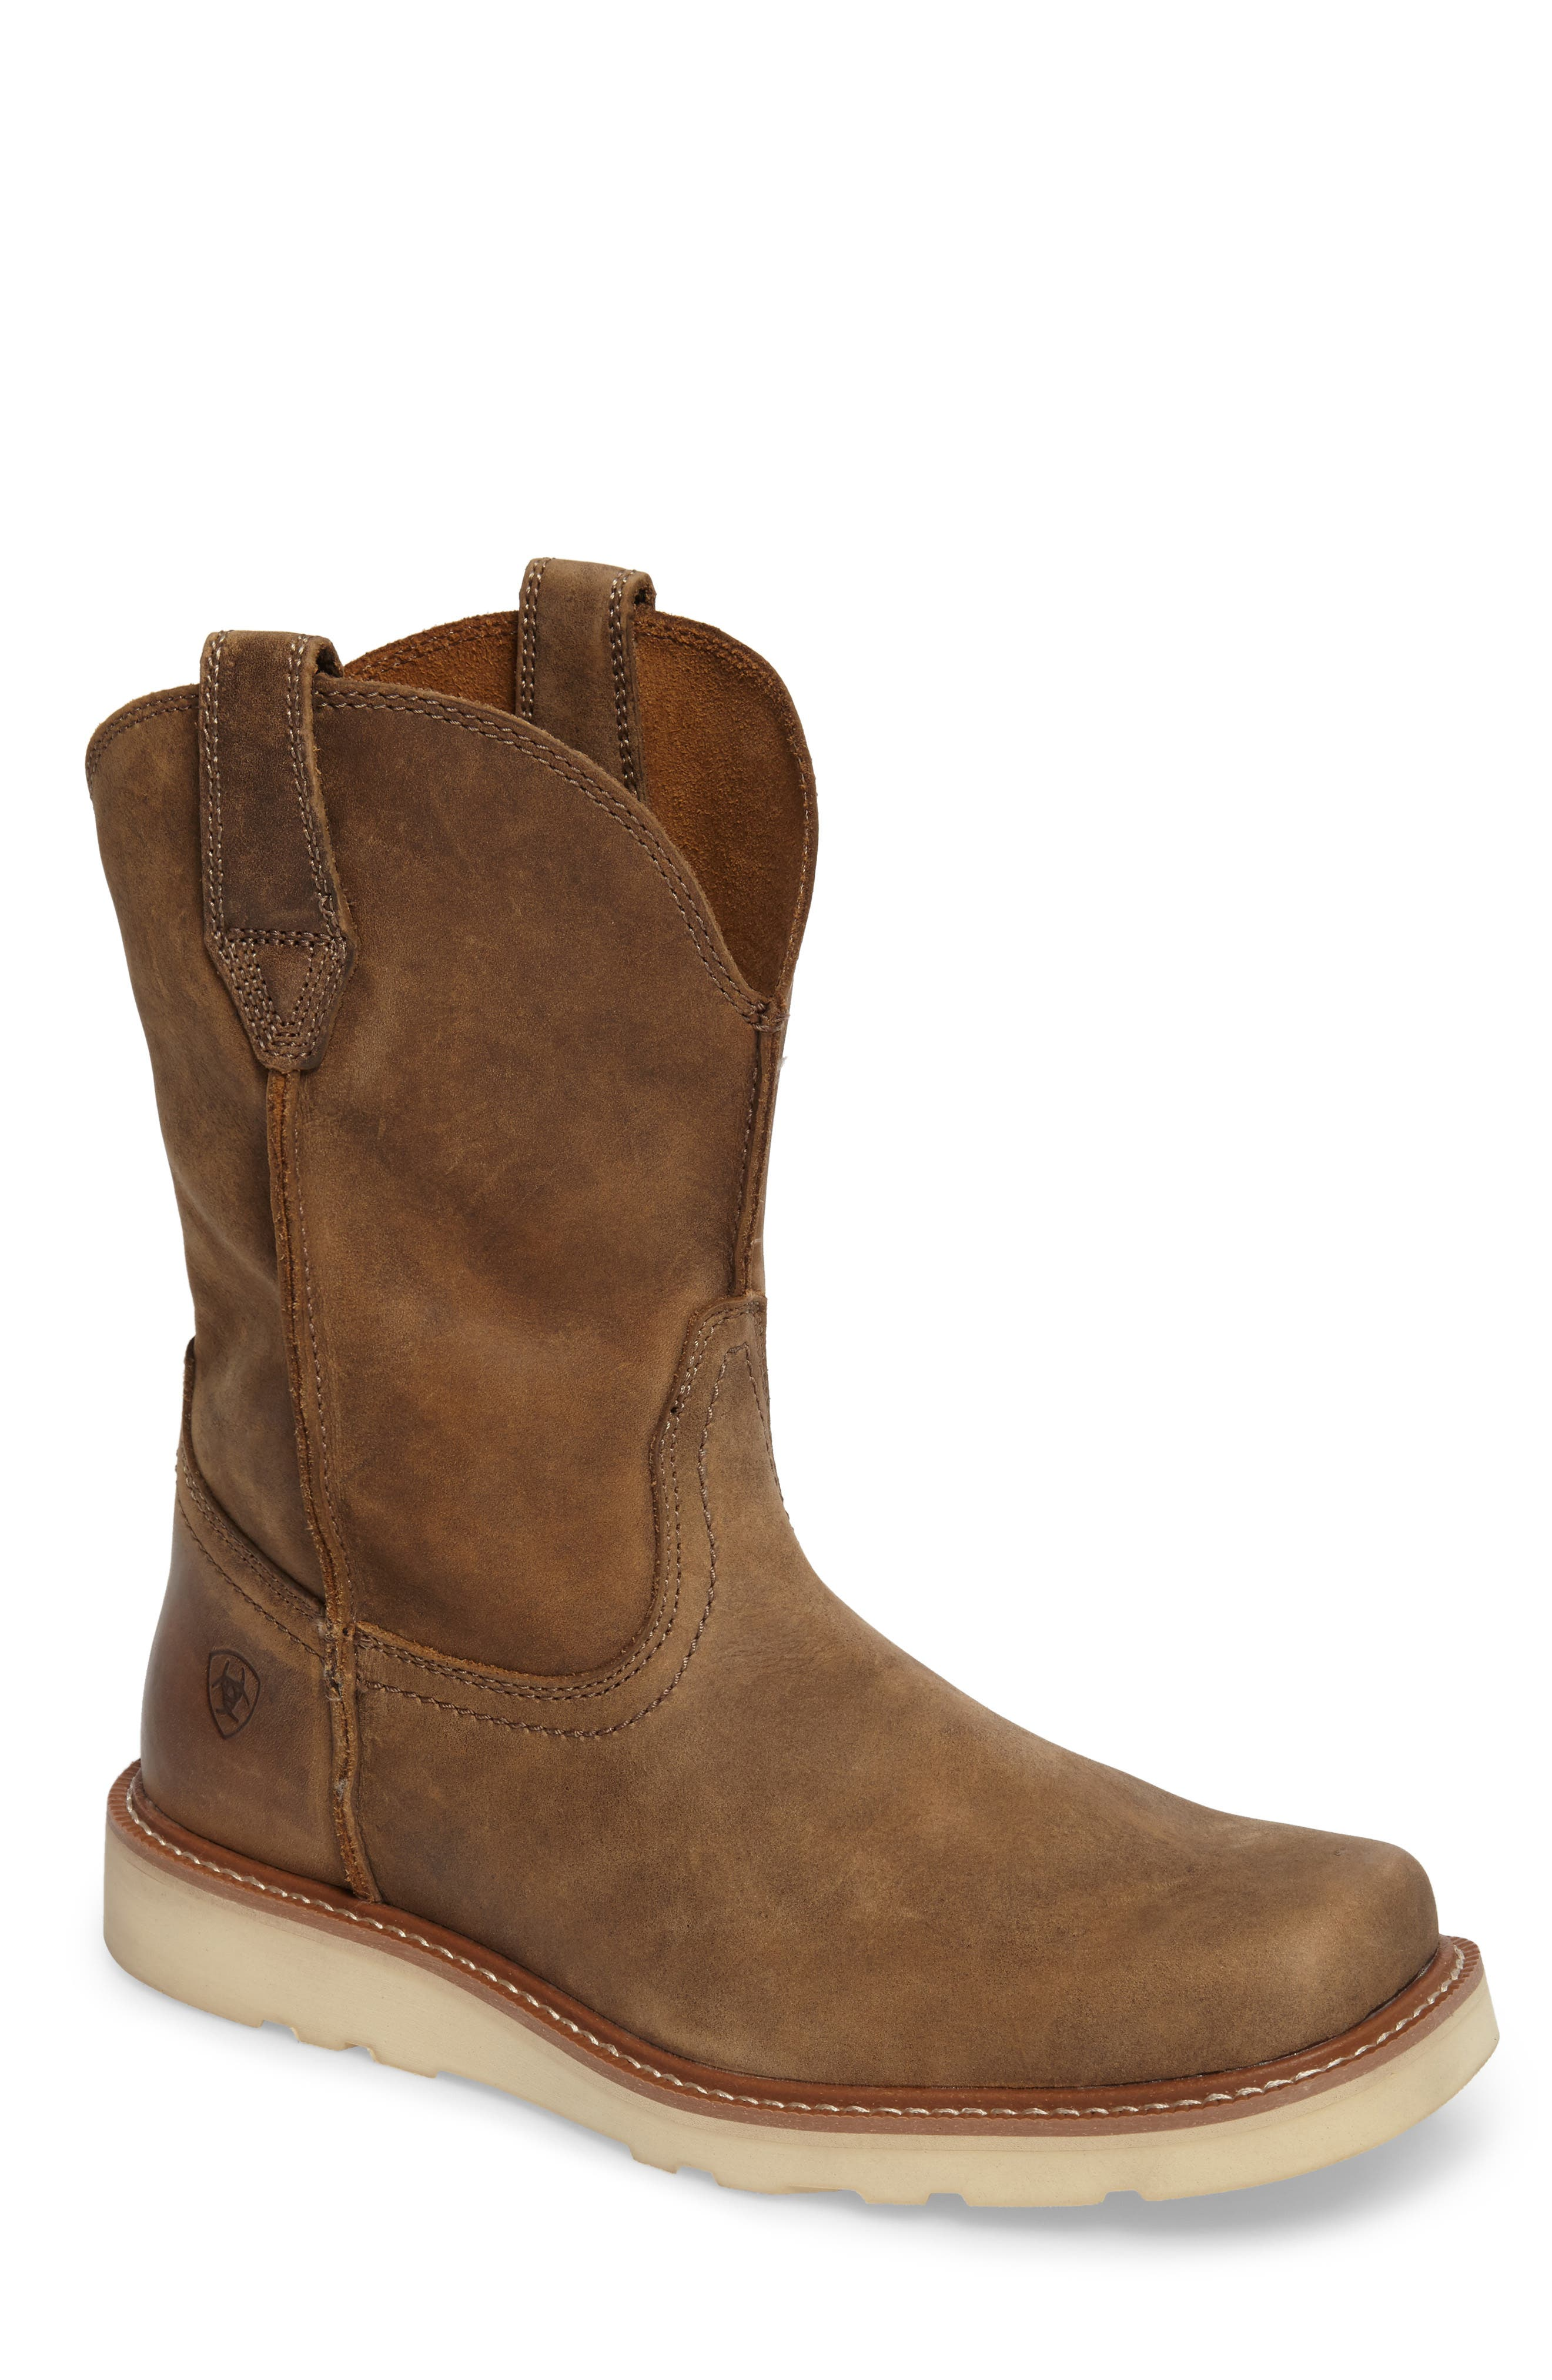 ARIAT, Rambler Tall Boot, Main thumbnail 1, color, BROWN BOMBER LEATHER